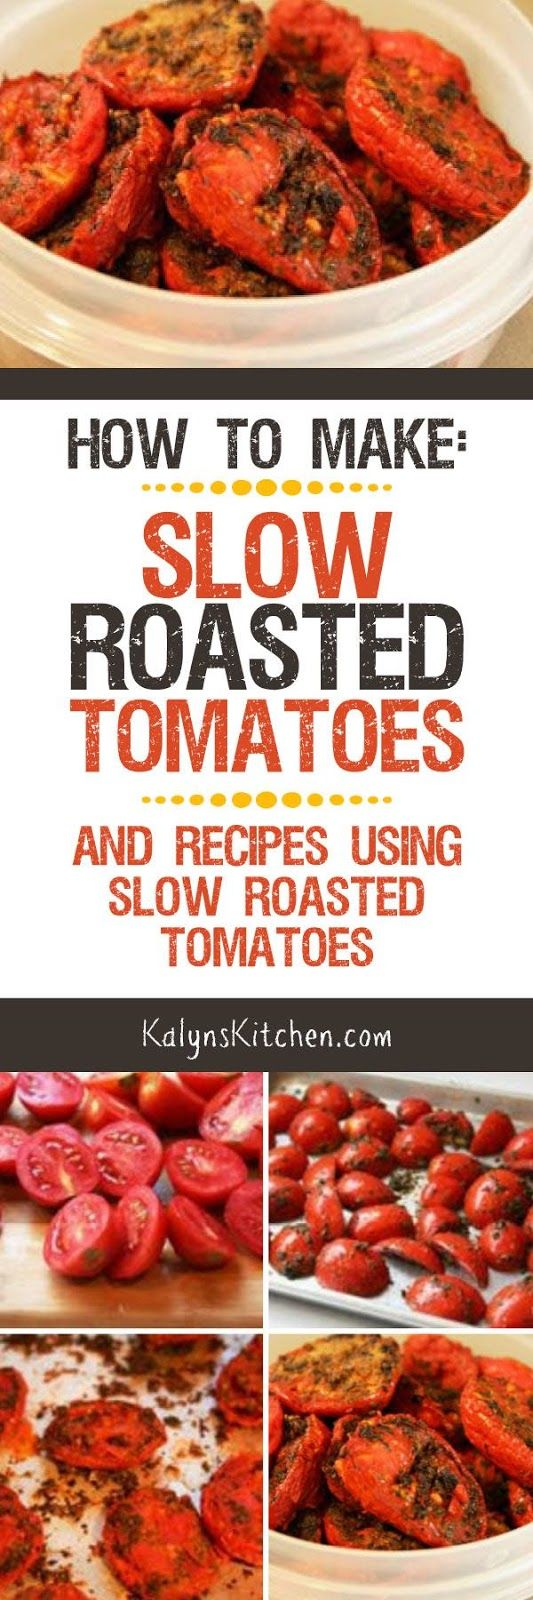 I've been making slow roasted tomatoes for oven ten years now and I think they're one of the best things about summer! Here's How to Make Slow Roasted Tomatoes and Recipes Using Slow Roasted Tomatoes; enjoy! [found on KalynsKitchen.com]